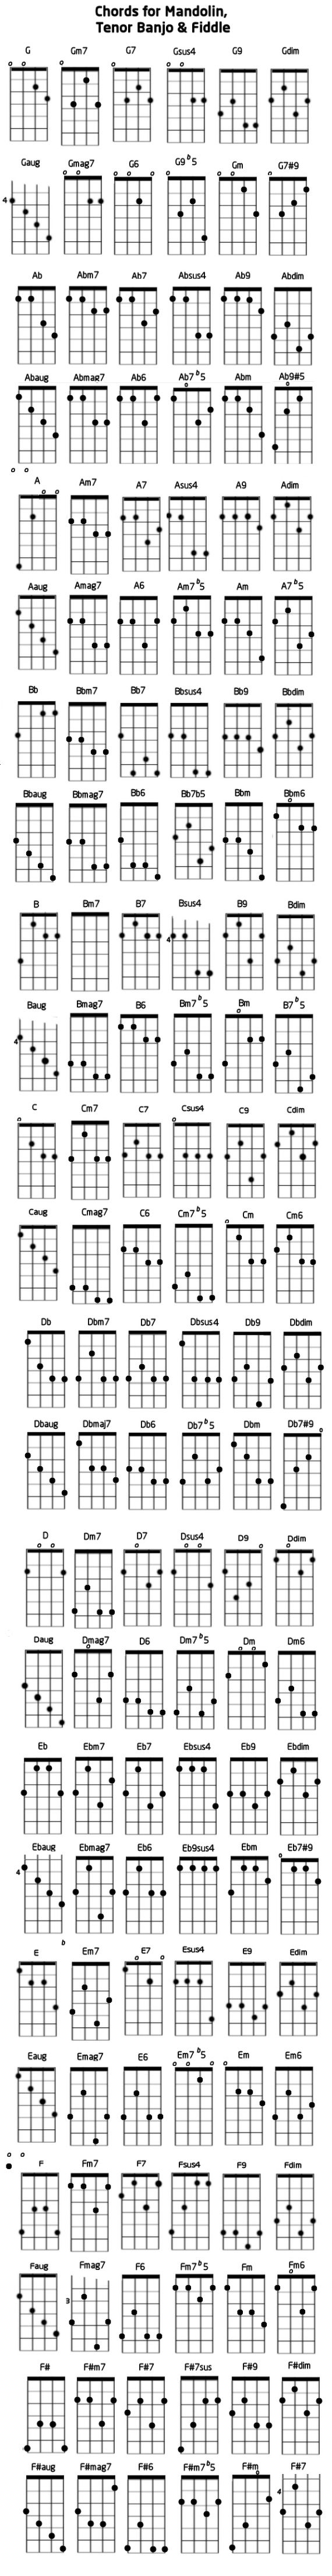 Chord sheet full Jan 2013 #MajesticVision